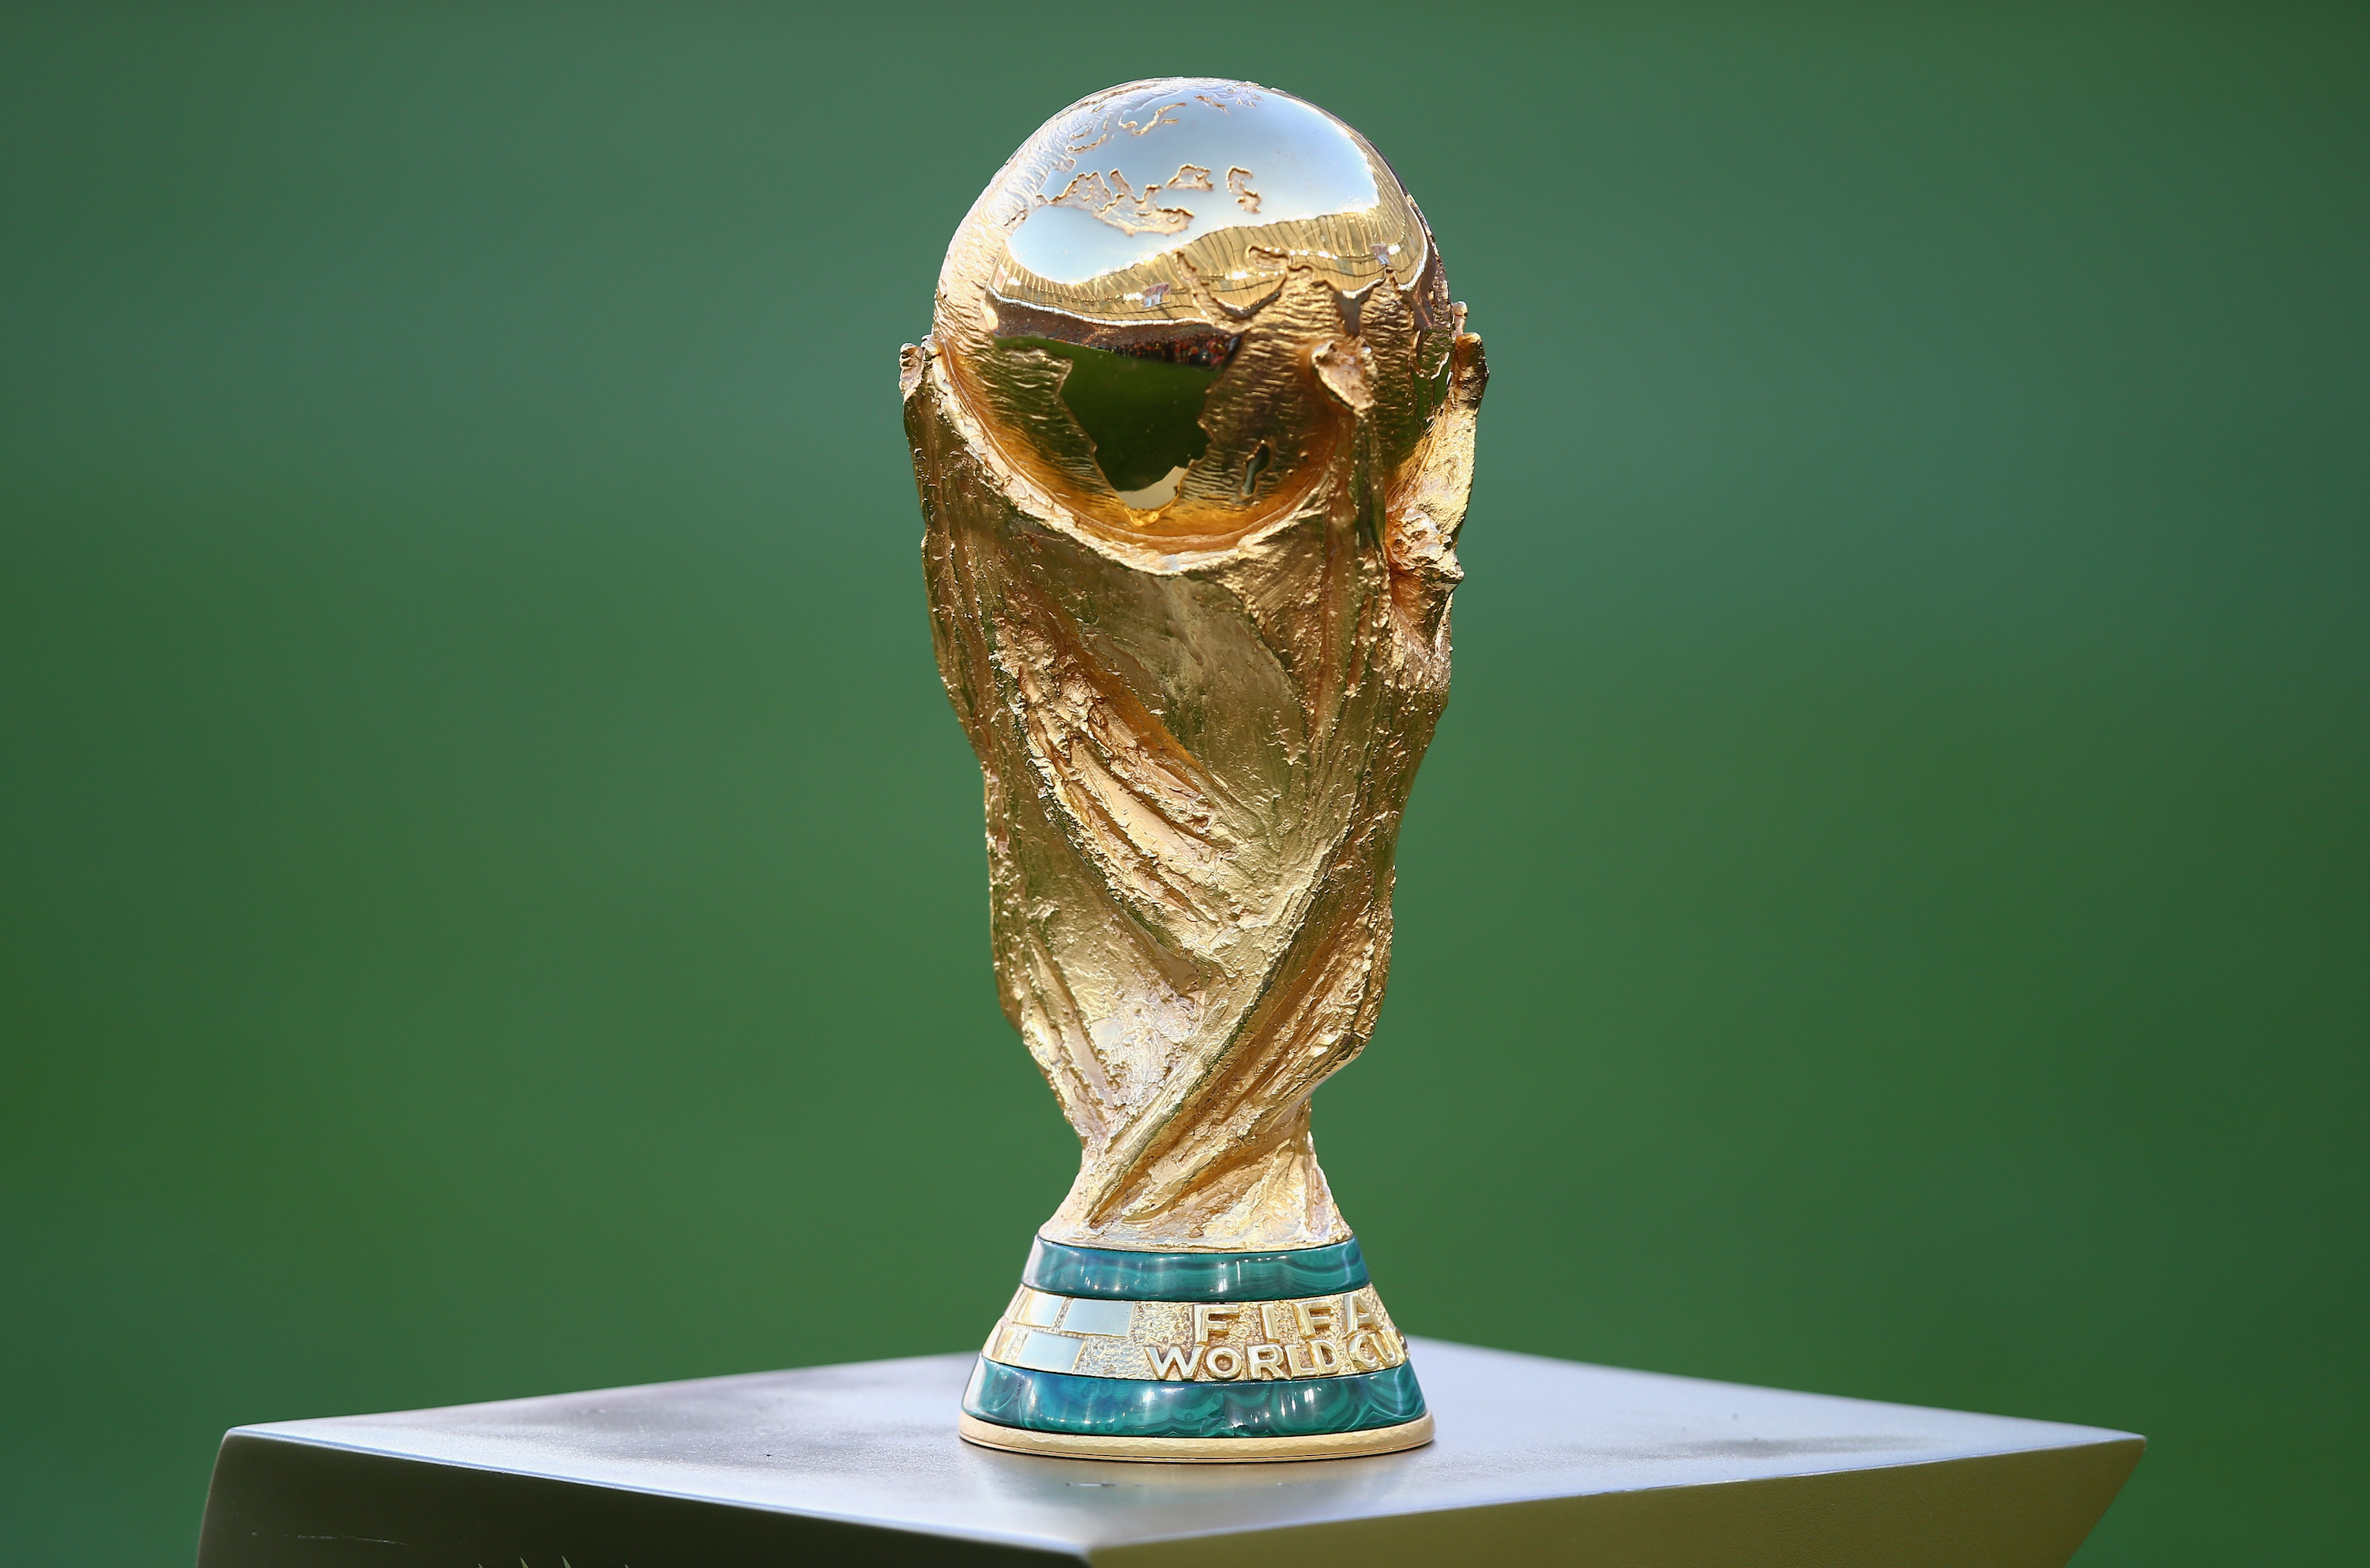 Which Latin American Team Has the Best Chance to Win the 2018 World Cup?